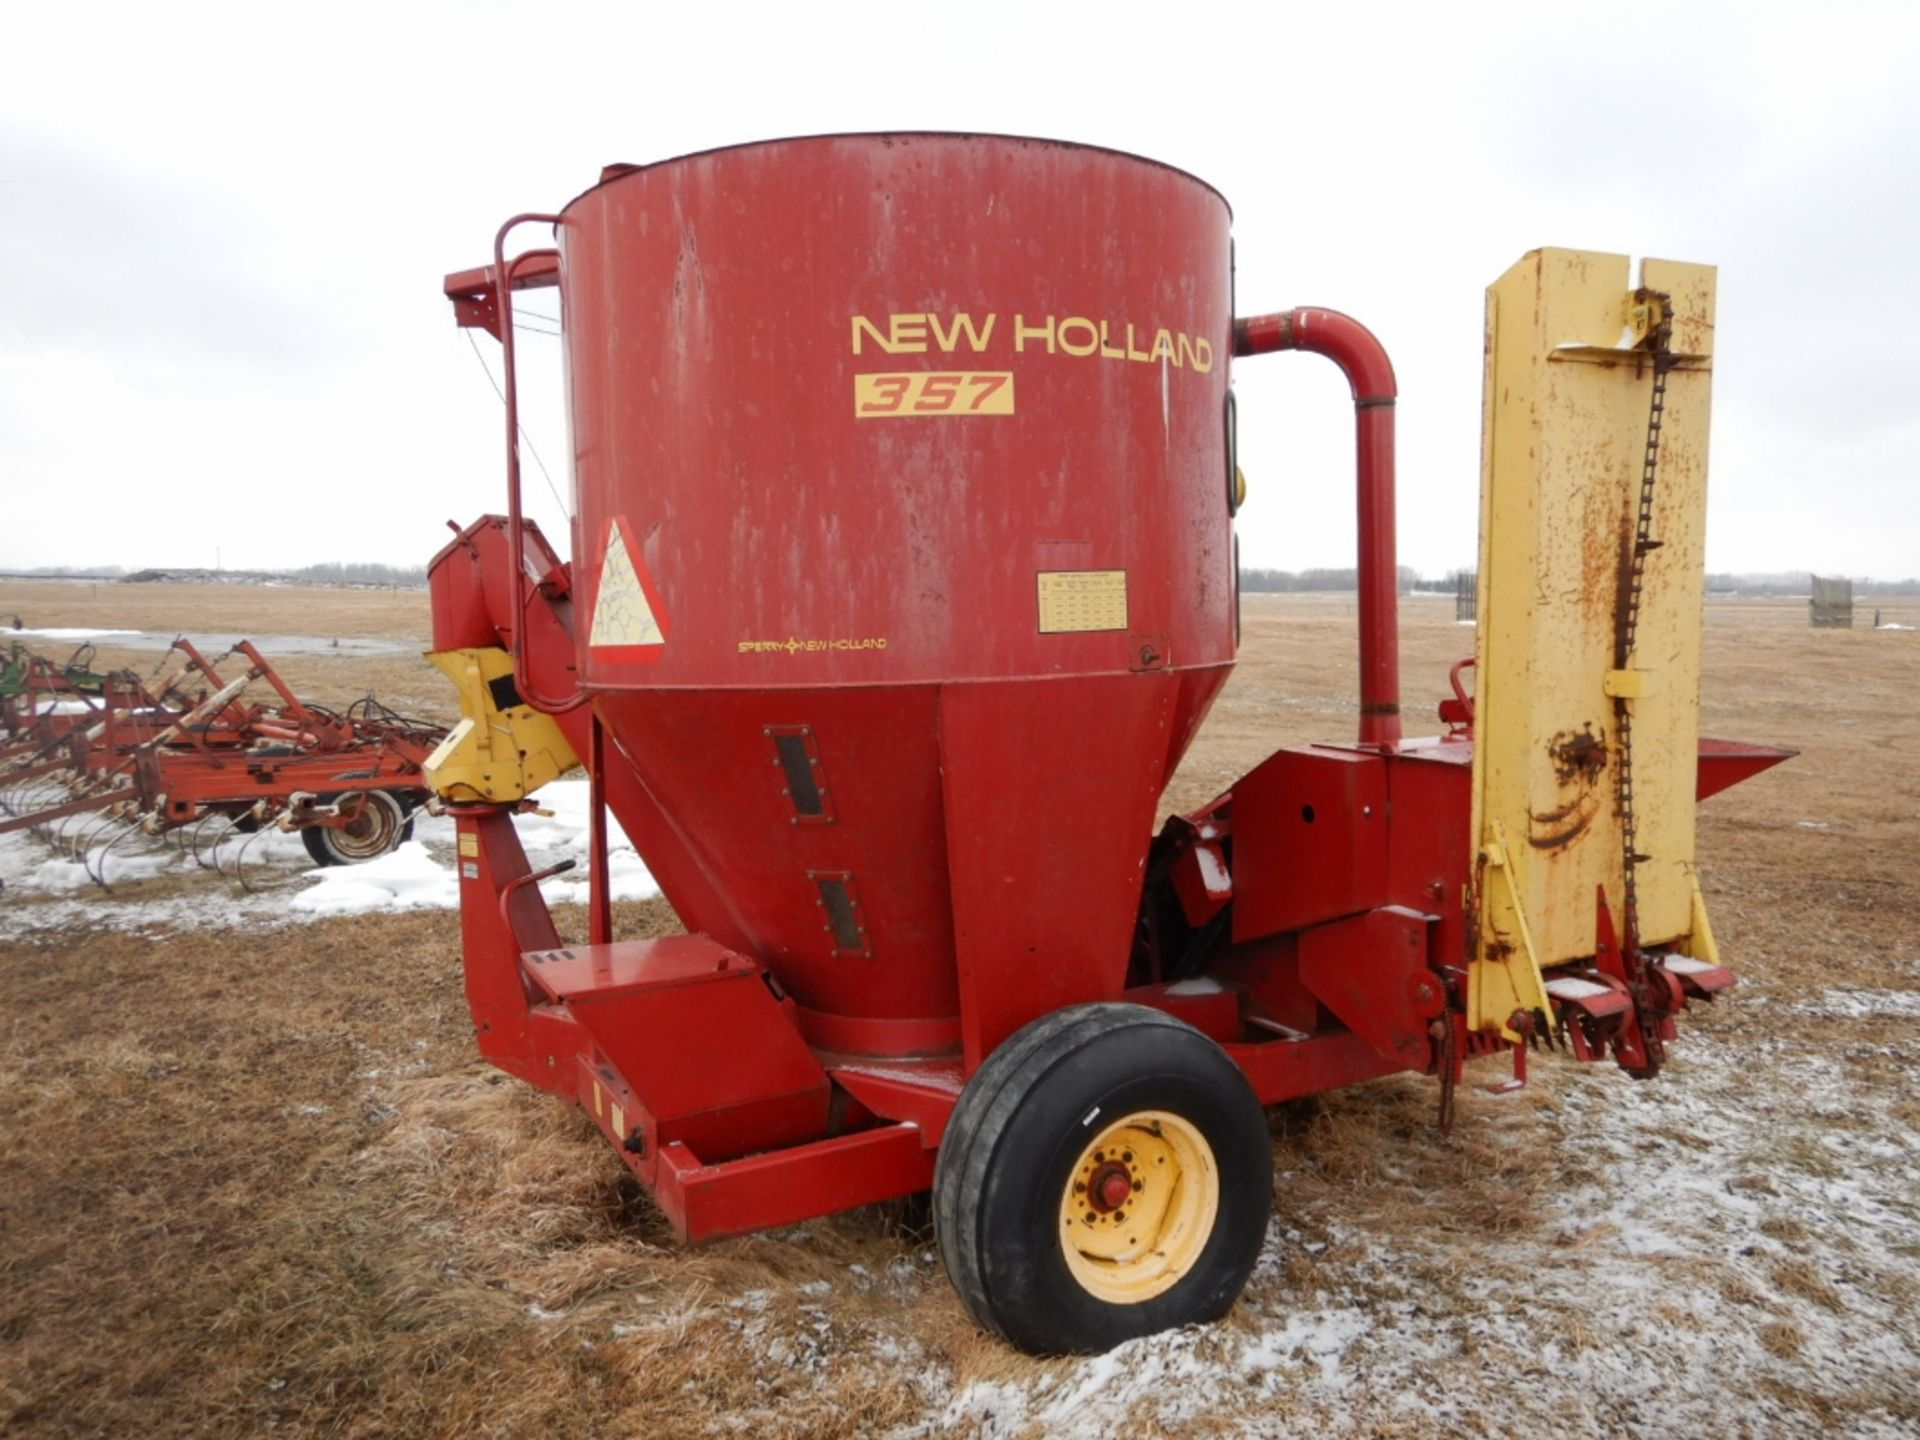 NH 357 GRINDER MIXER MILL W/SQUARE BALE FEEDER ATTACH., EXTRA SCREENS - Image 3 of 7